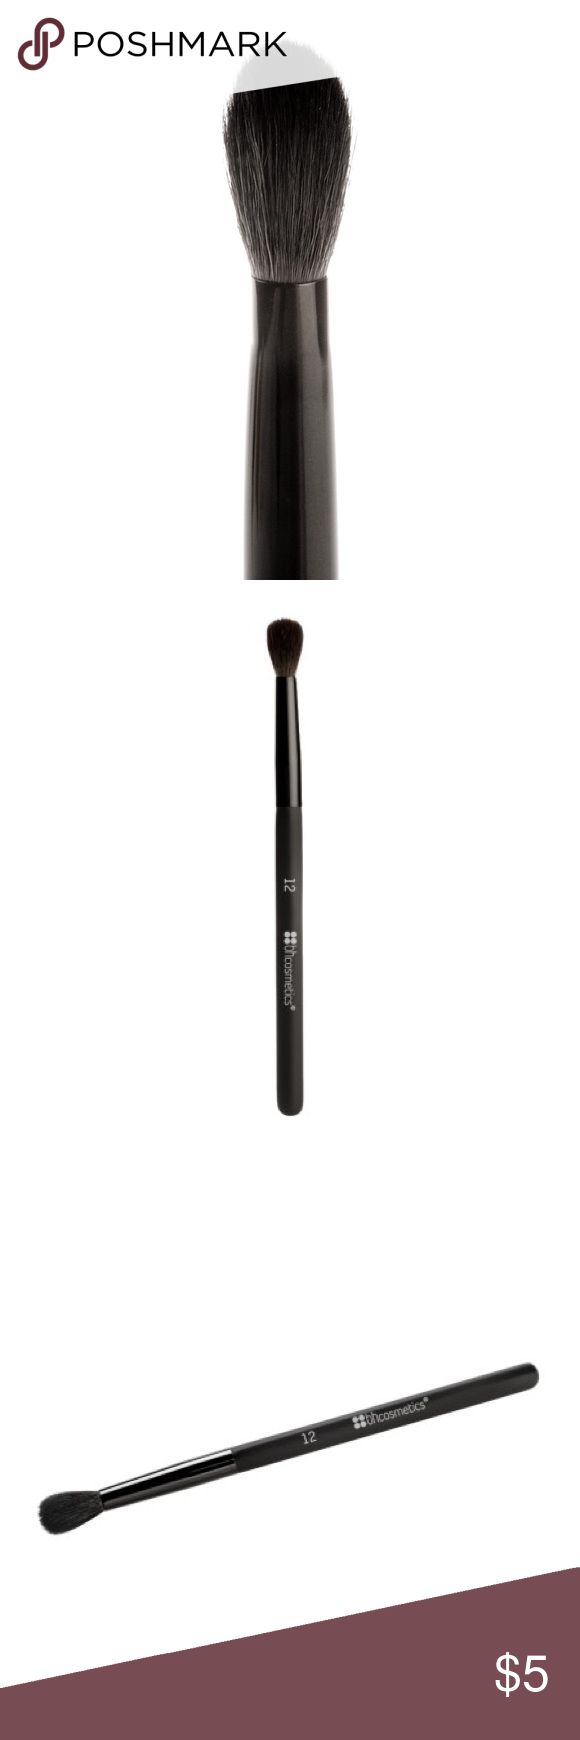 Blending brush Blends your most glamorous eyeshadow colors with this soft, fluffy bristles blending brush. Use this on your crease, brow bones, and cheeks. Brand new!!! This product came directly from BH Cosmetic. BH Cosmetics Makeup Brushes & Tools